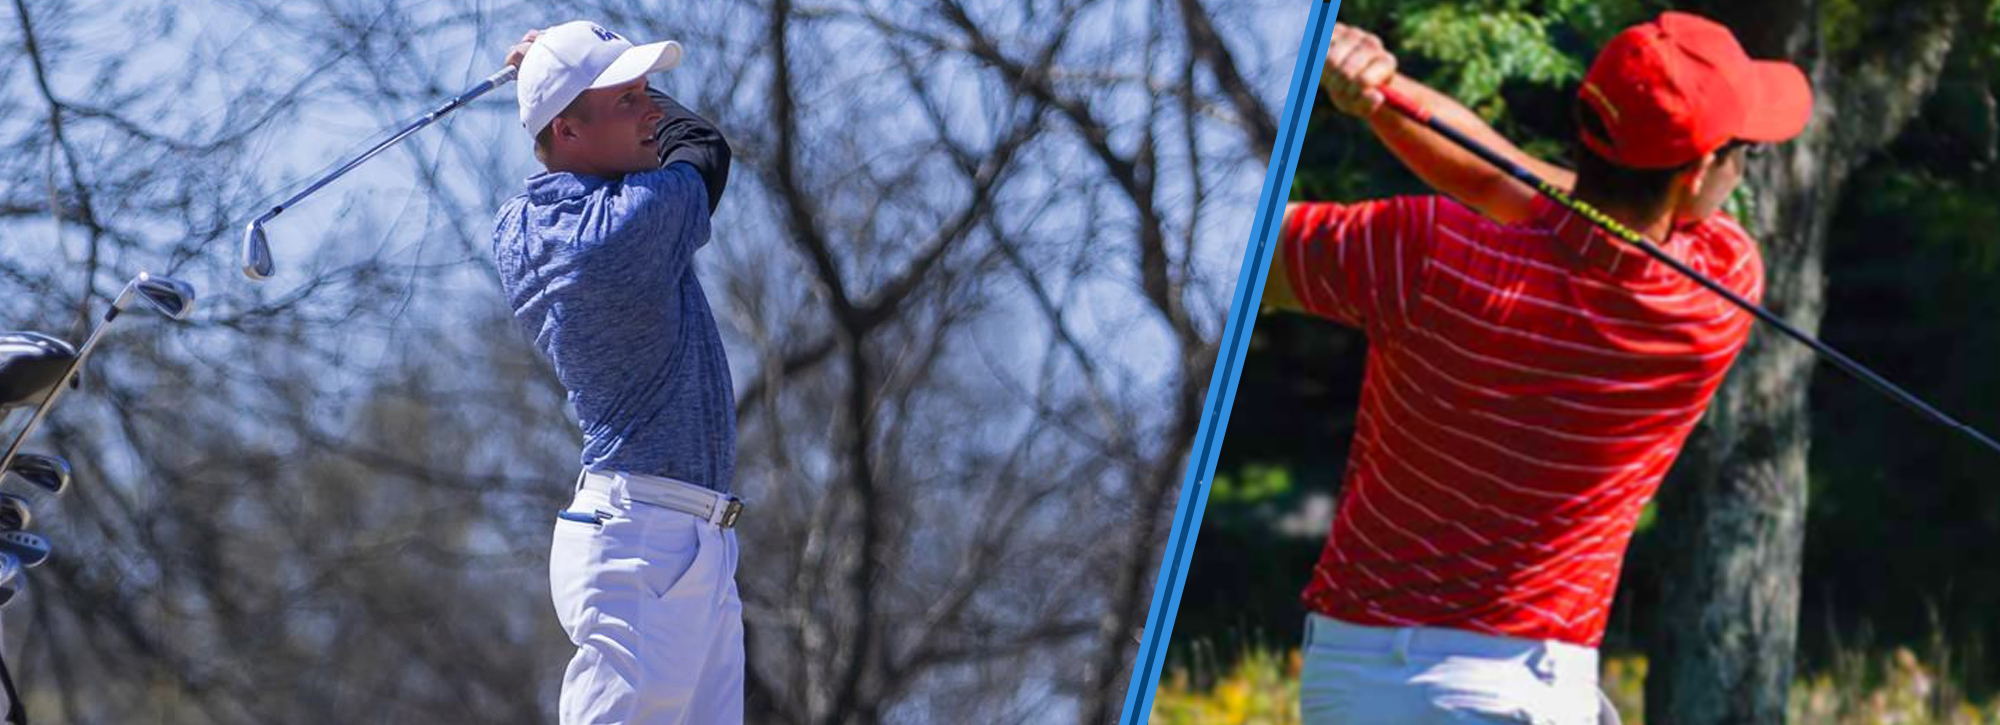 GVSU's Scott repeats as men's golf POTY; Ferris State's Hursey and Wittenbach also receive special honors